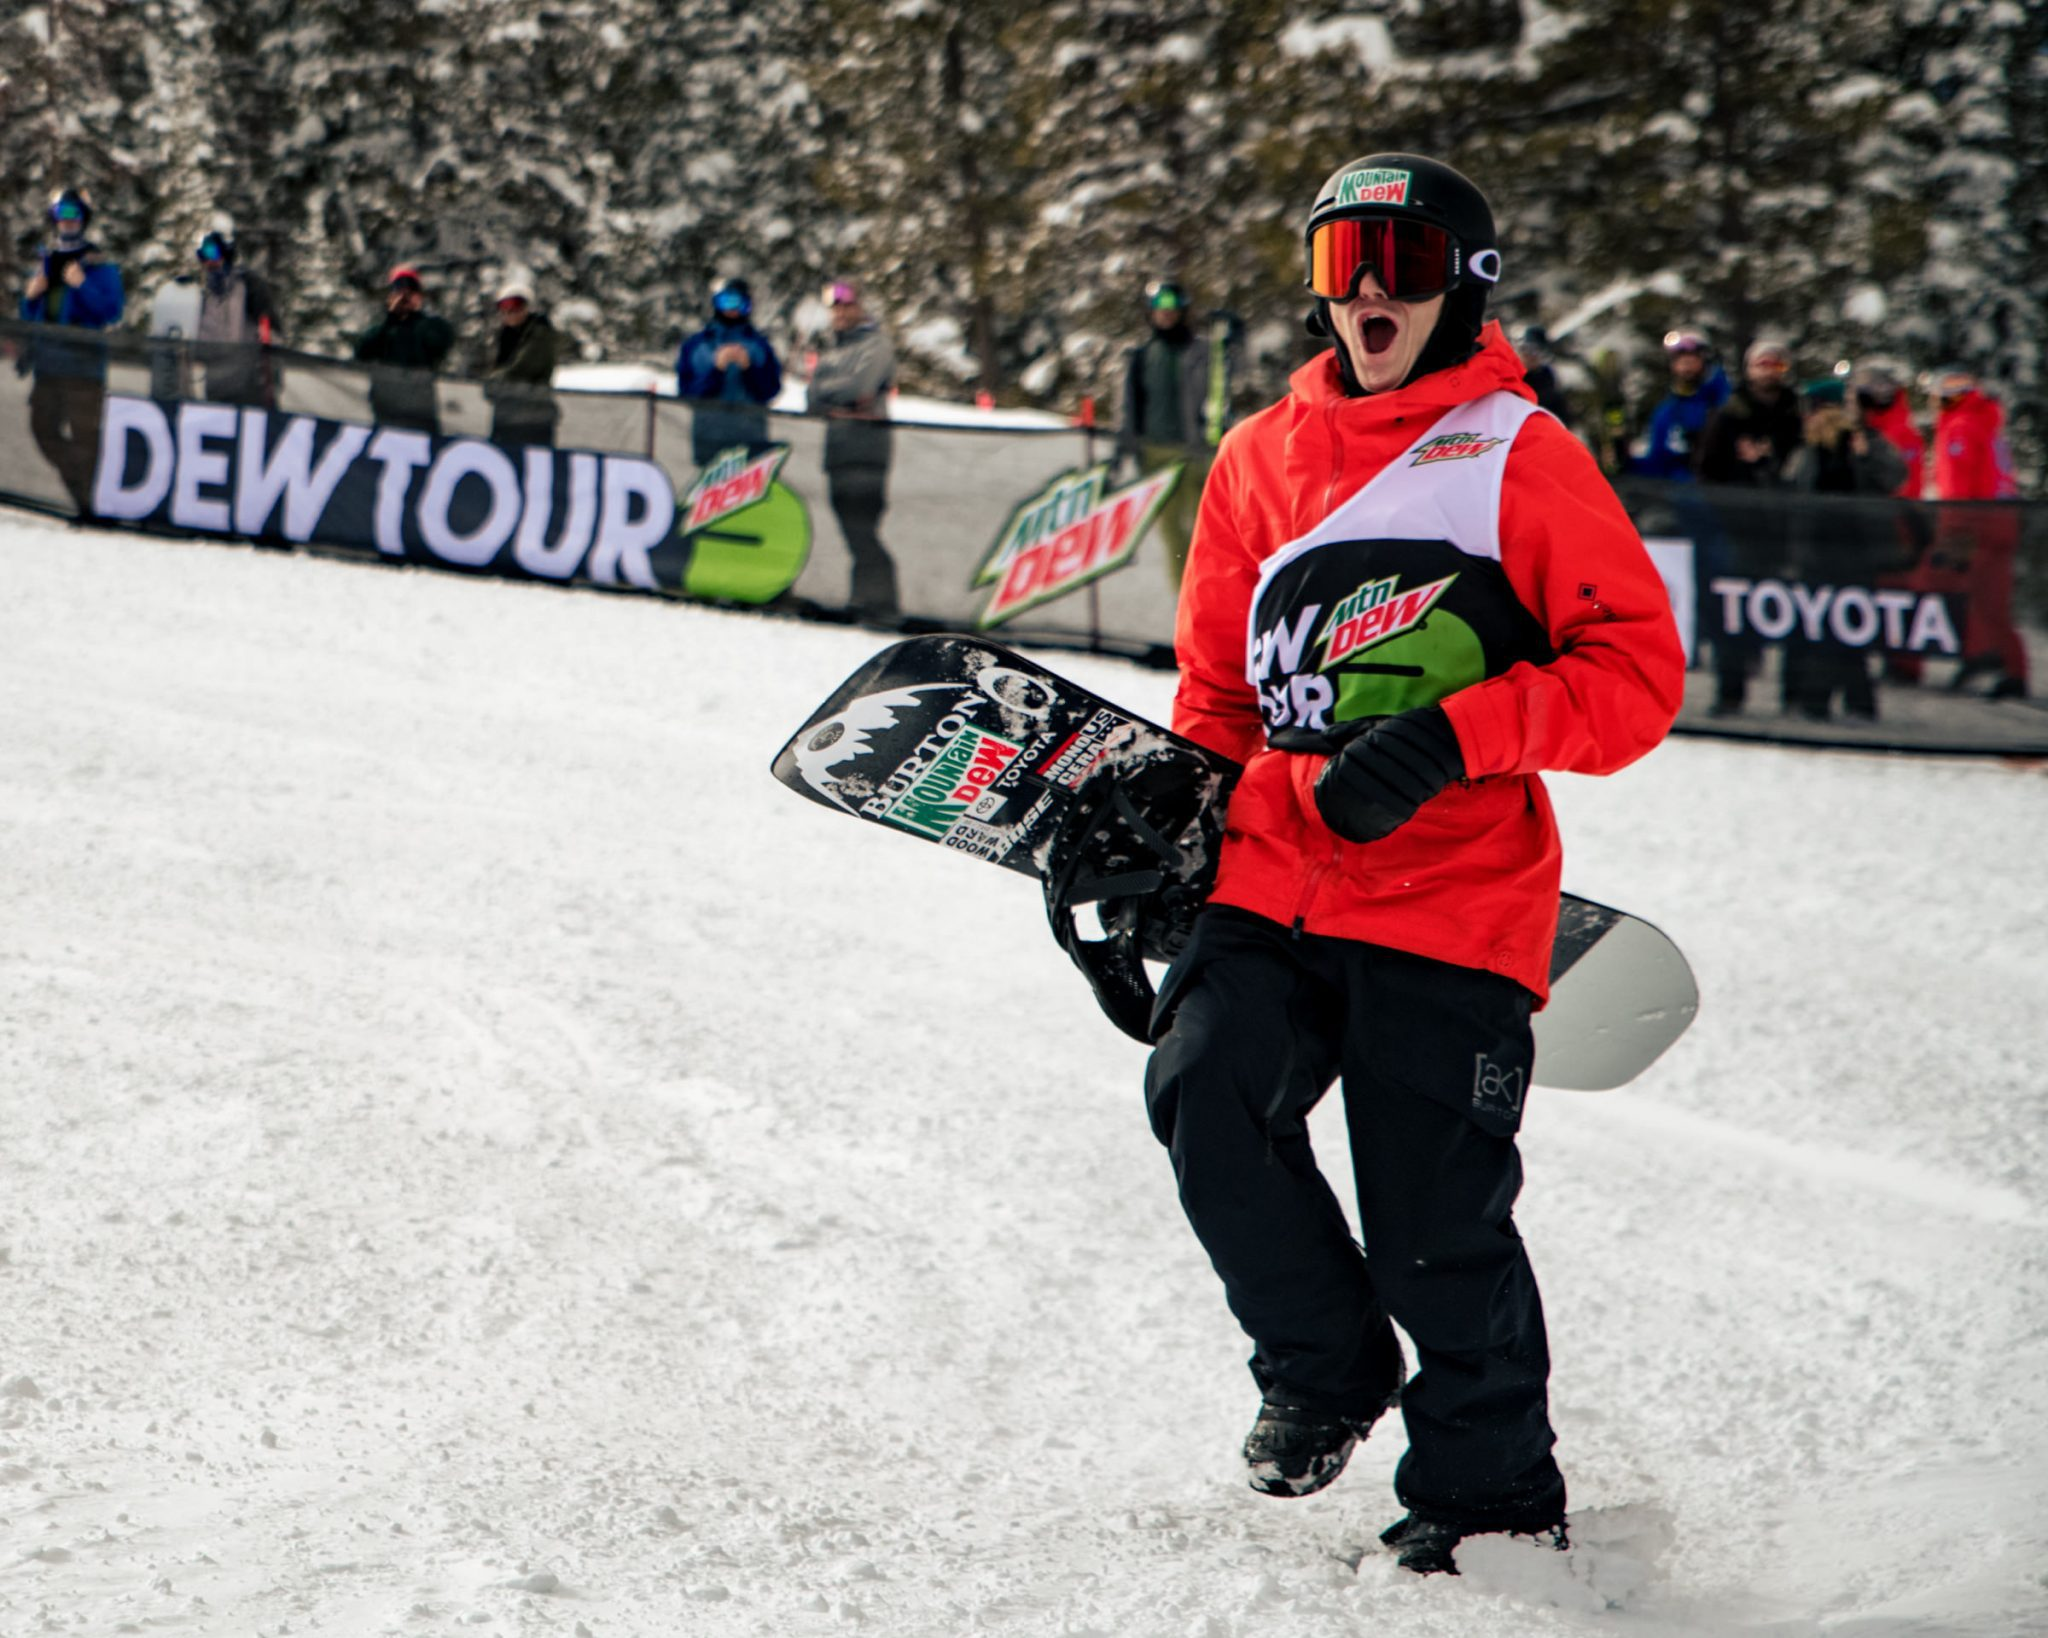 Man at snowboarding competition holding his snowboard after a run